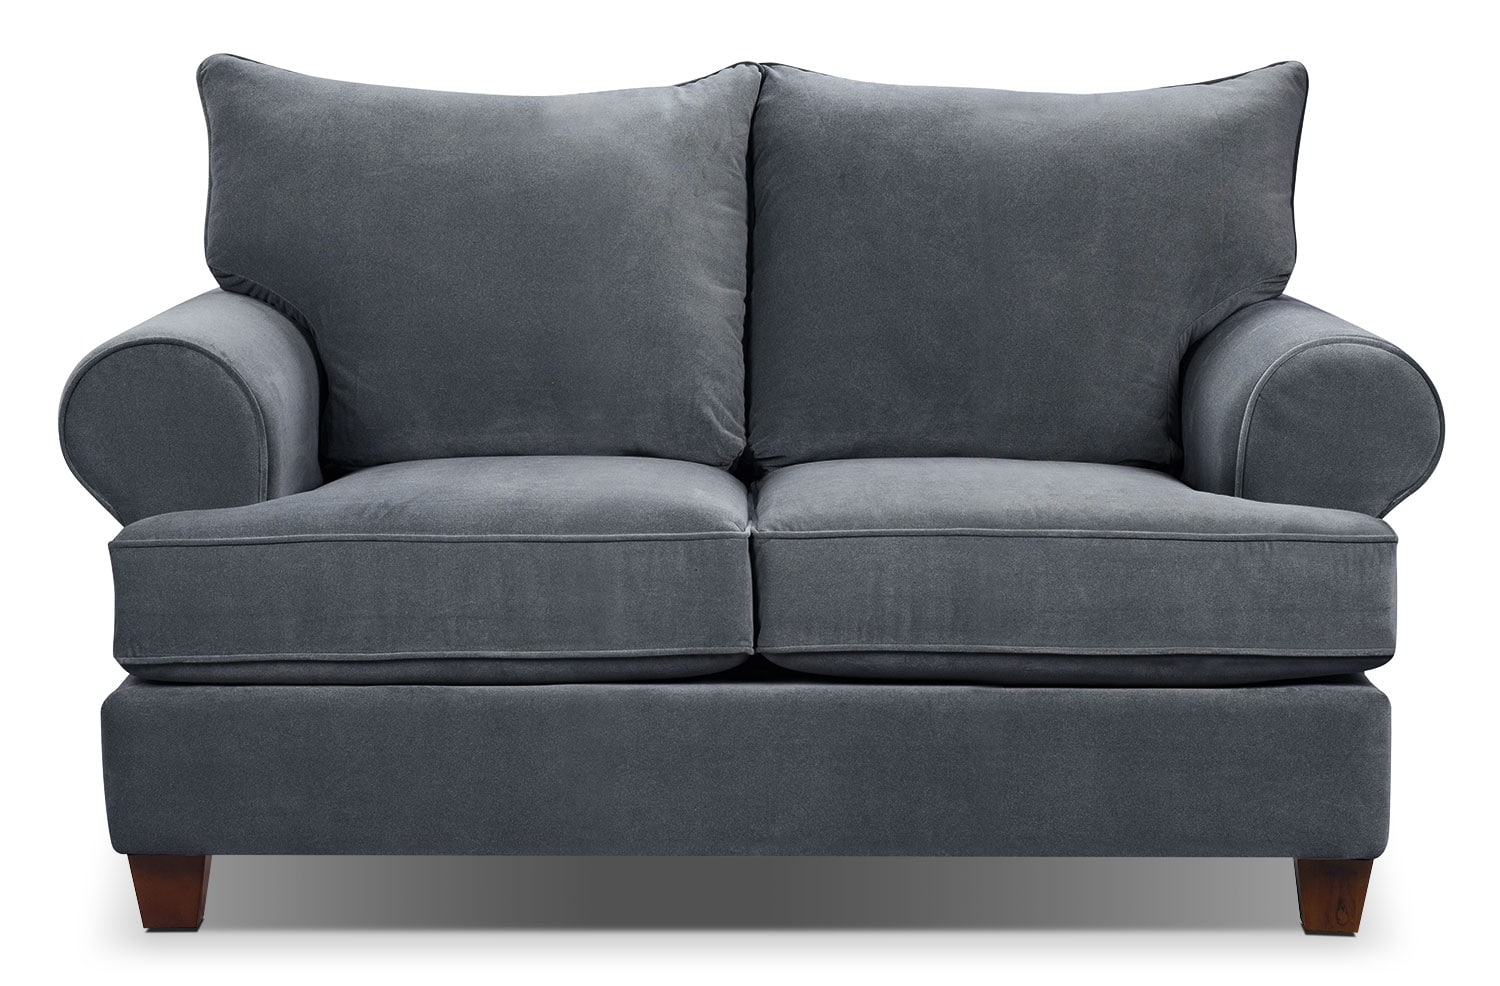 Paige Microsuede Loveseat - Grey